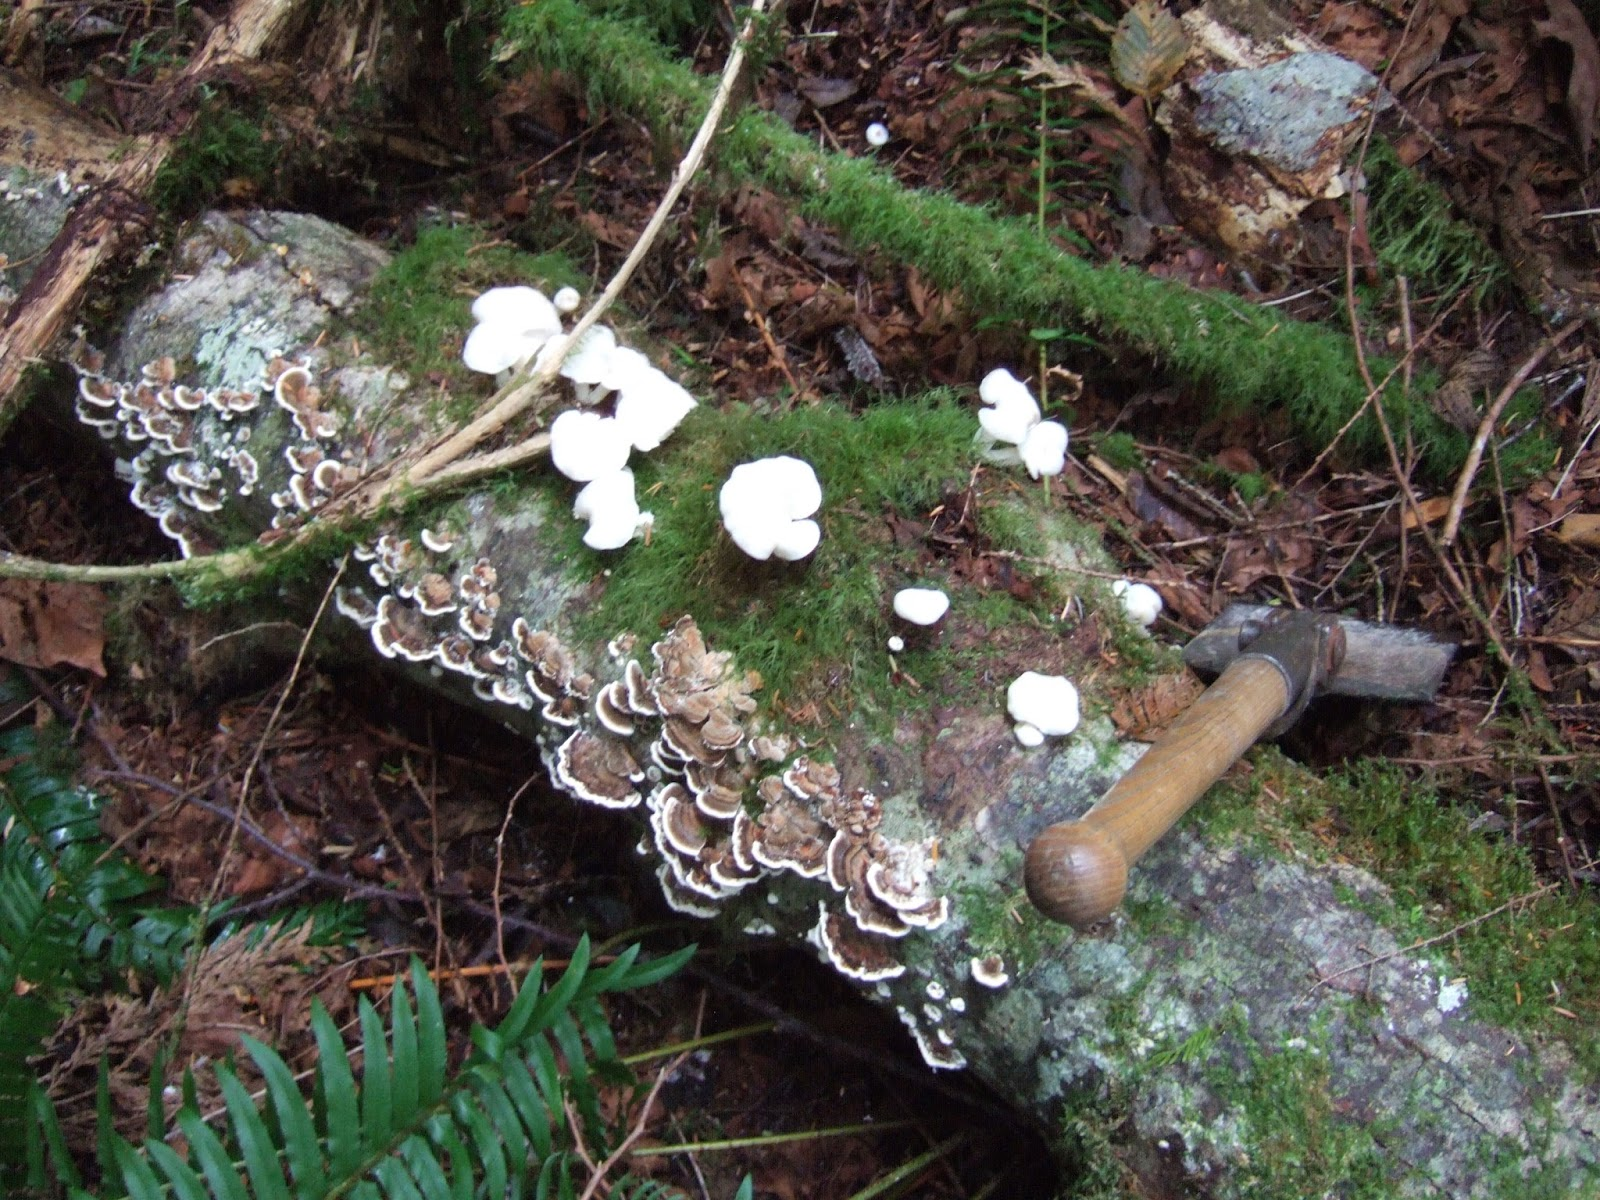 Wa Mushrooms Images - Reverse Search